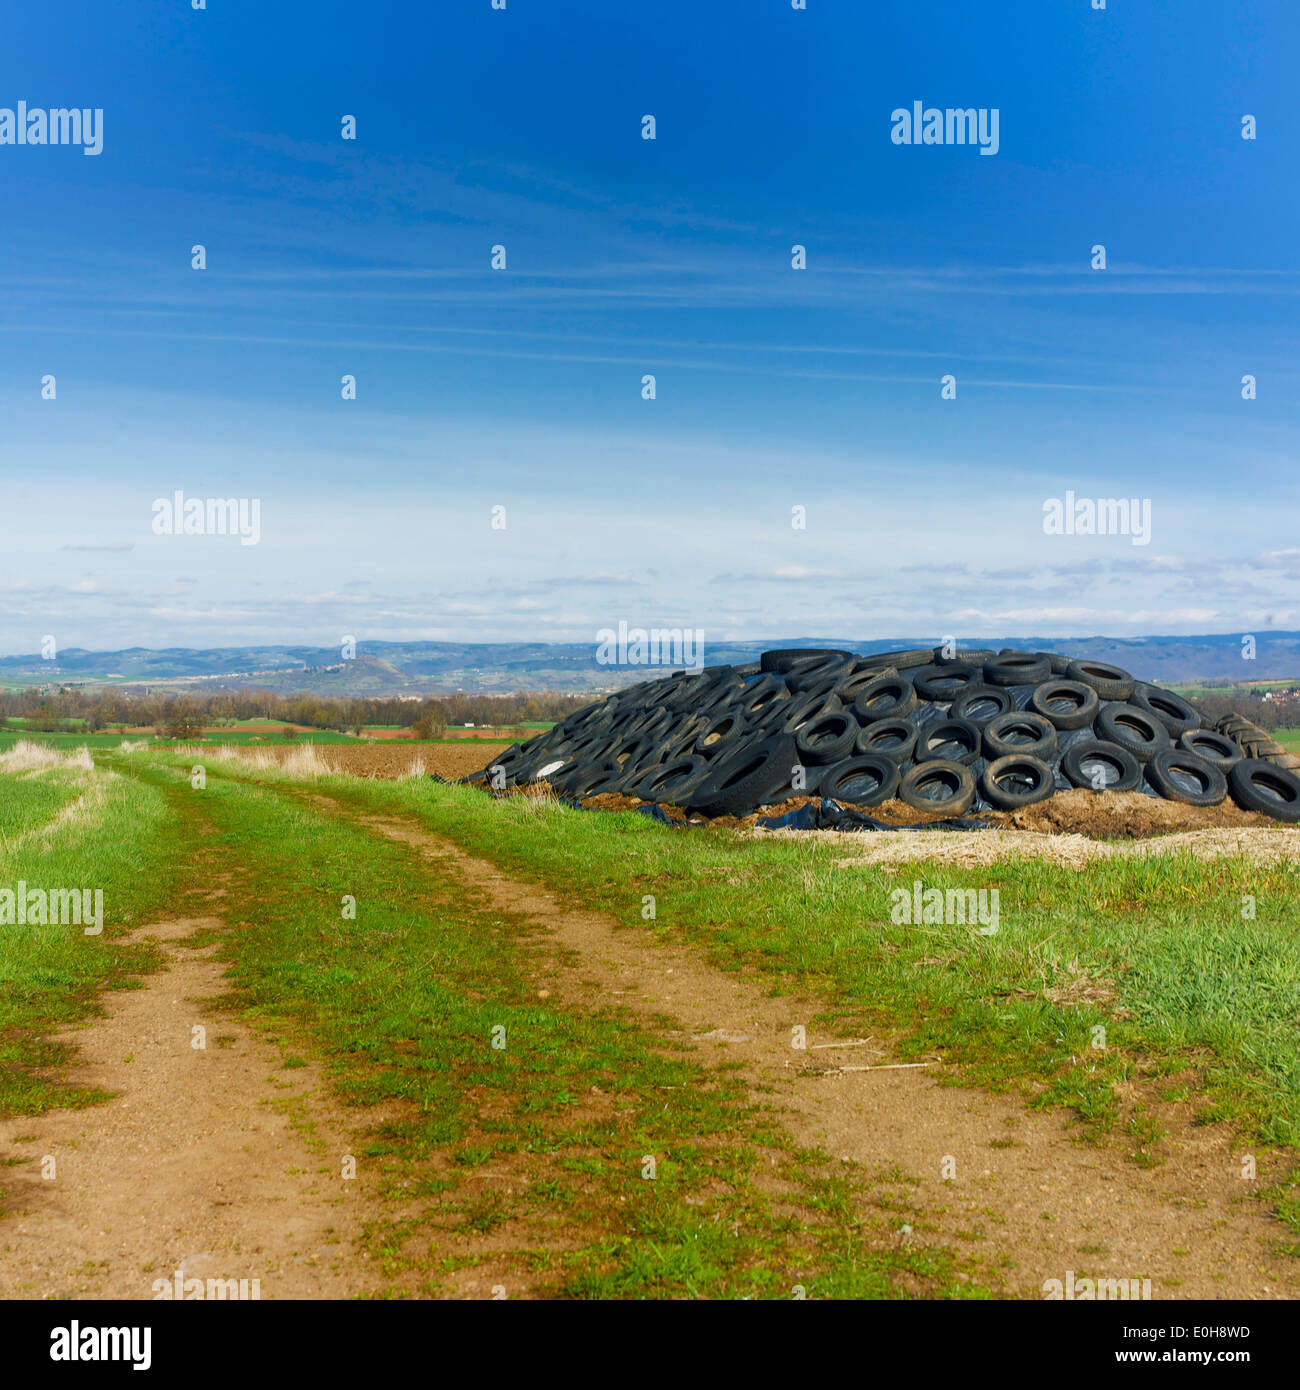 Old tires dumped in the midst of nature - Stock Image